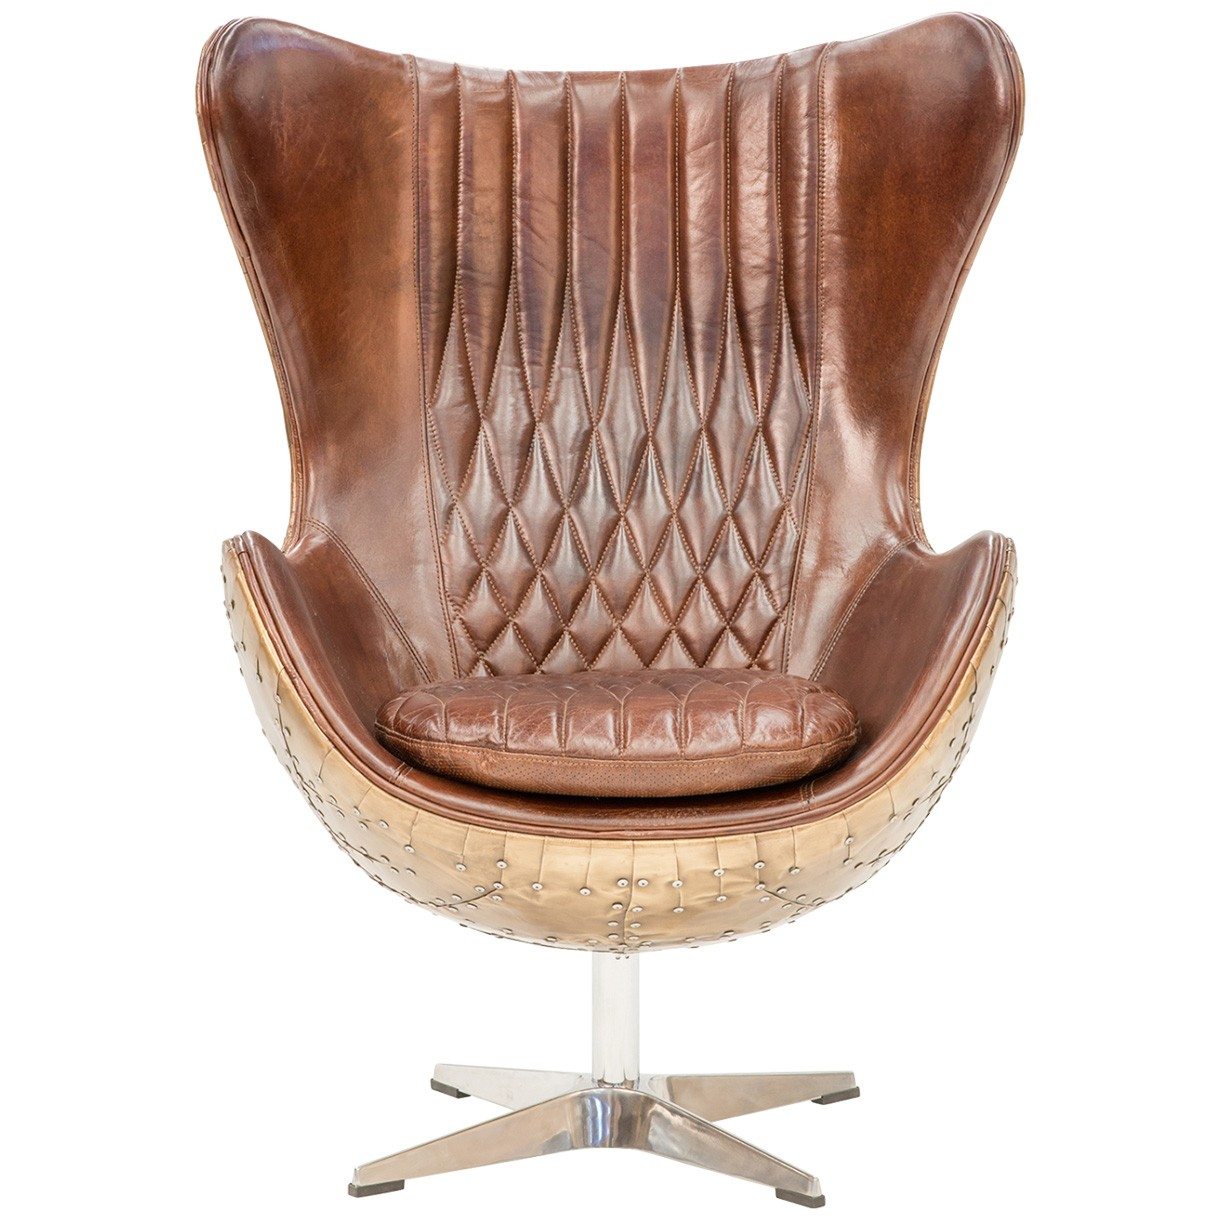 Dudley Industrial Aged Leather & Alloy Swivel Egg Chair